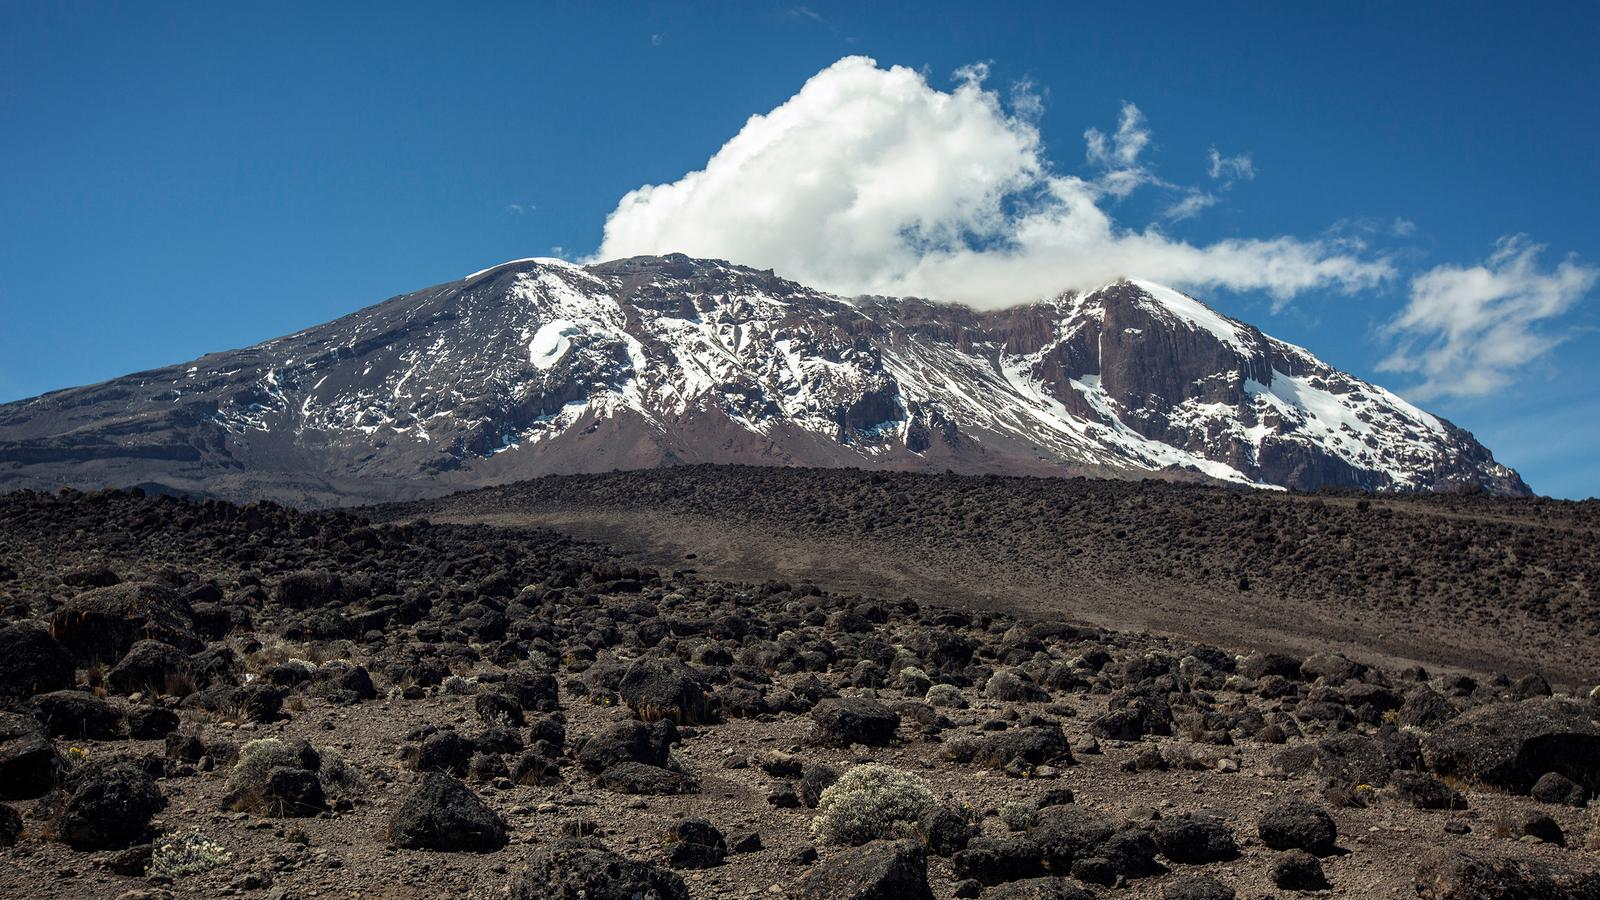 Where Is Mount Kilimanjaro On A Map Of Africa.Mt Kilimanjaro Trek Machame Route 9 Days In Tanzania Africa G